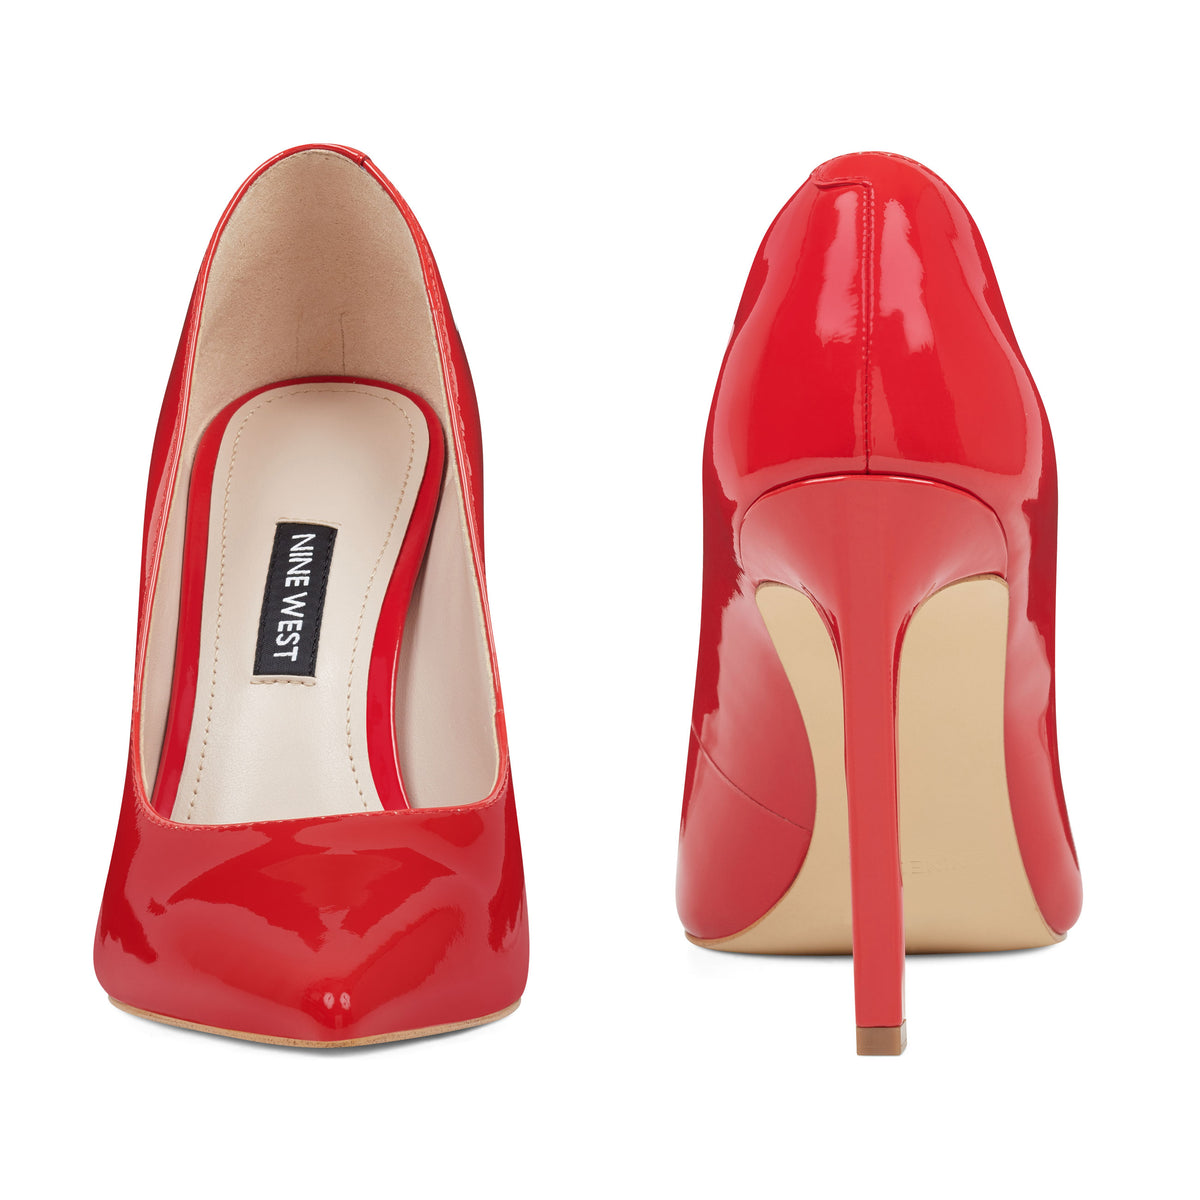 tatiana-pointy-toe-pumps-in-coral-red-patent